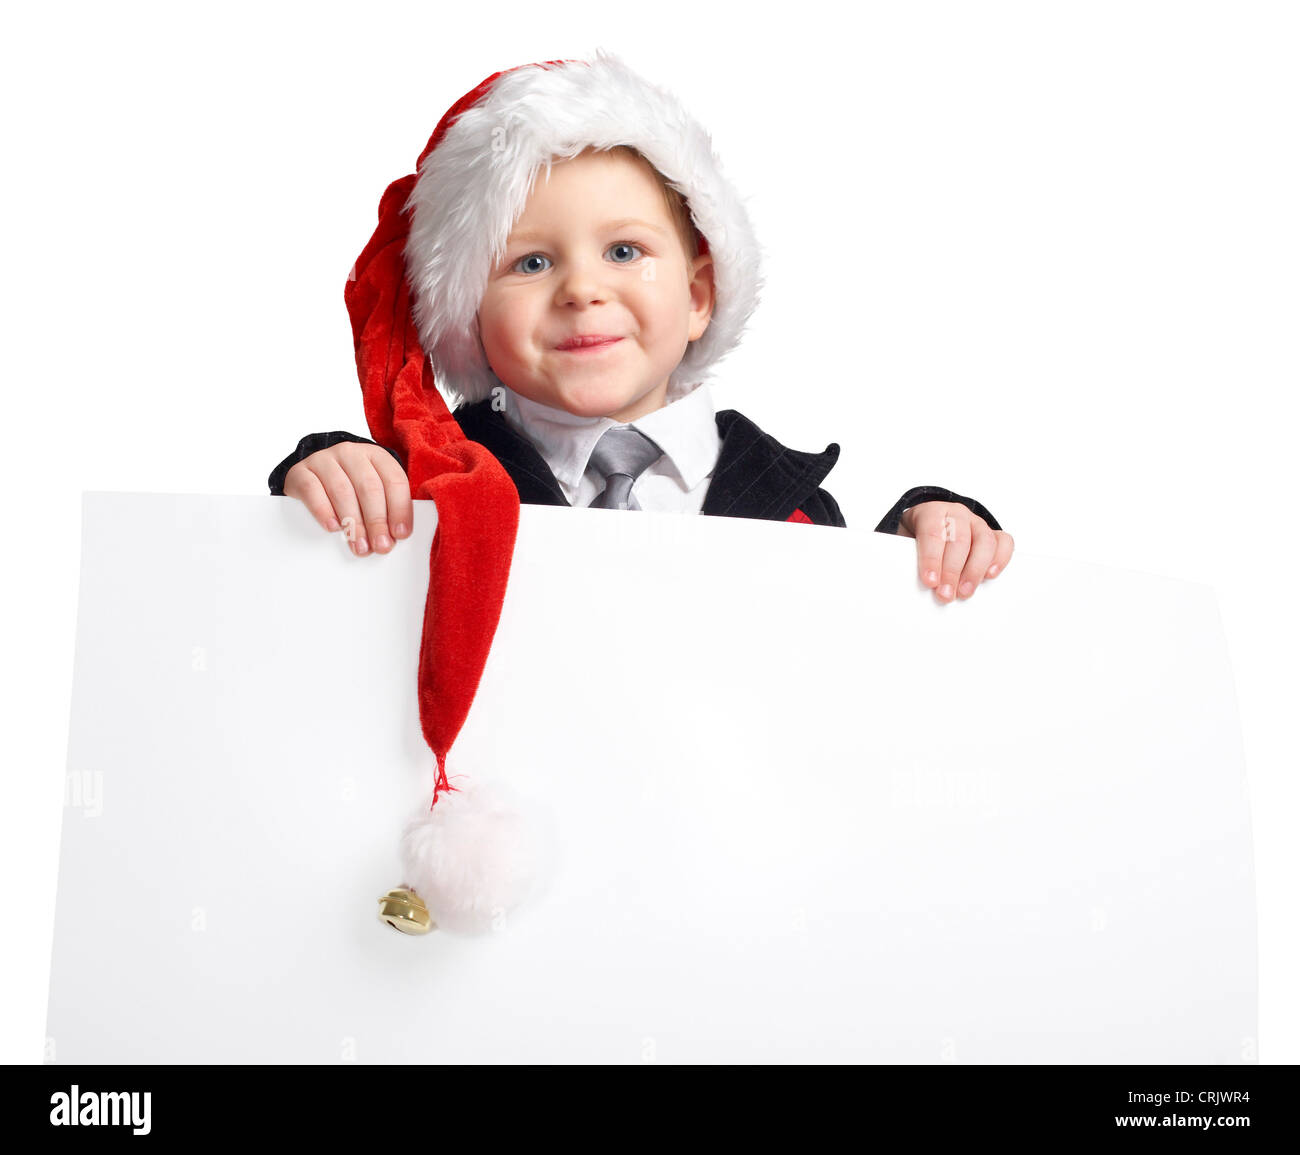 smiling young boy with a Santa cap holding an empty white panel - Stock Image